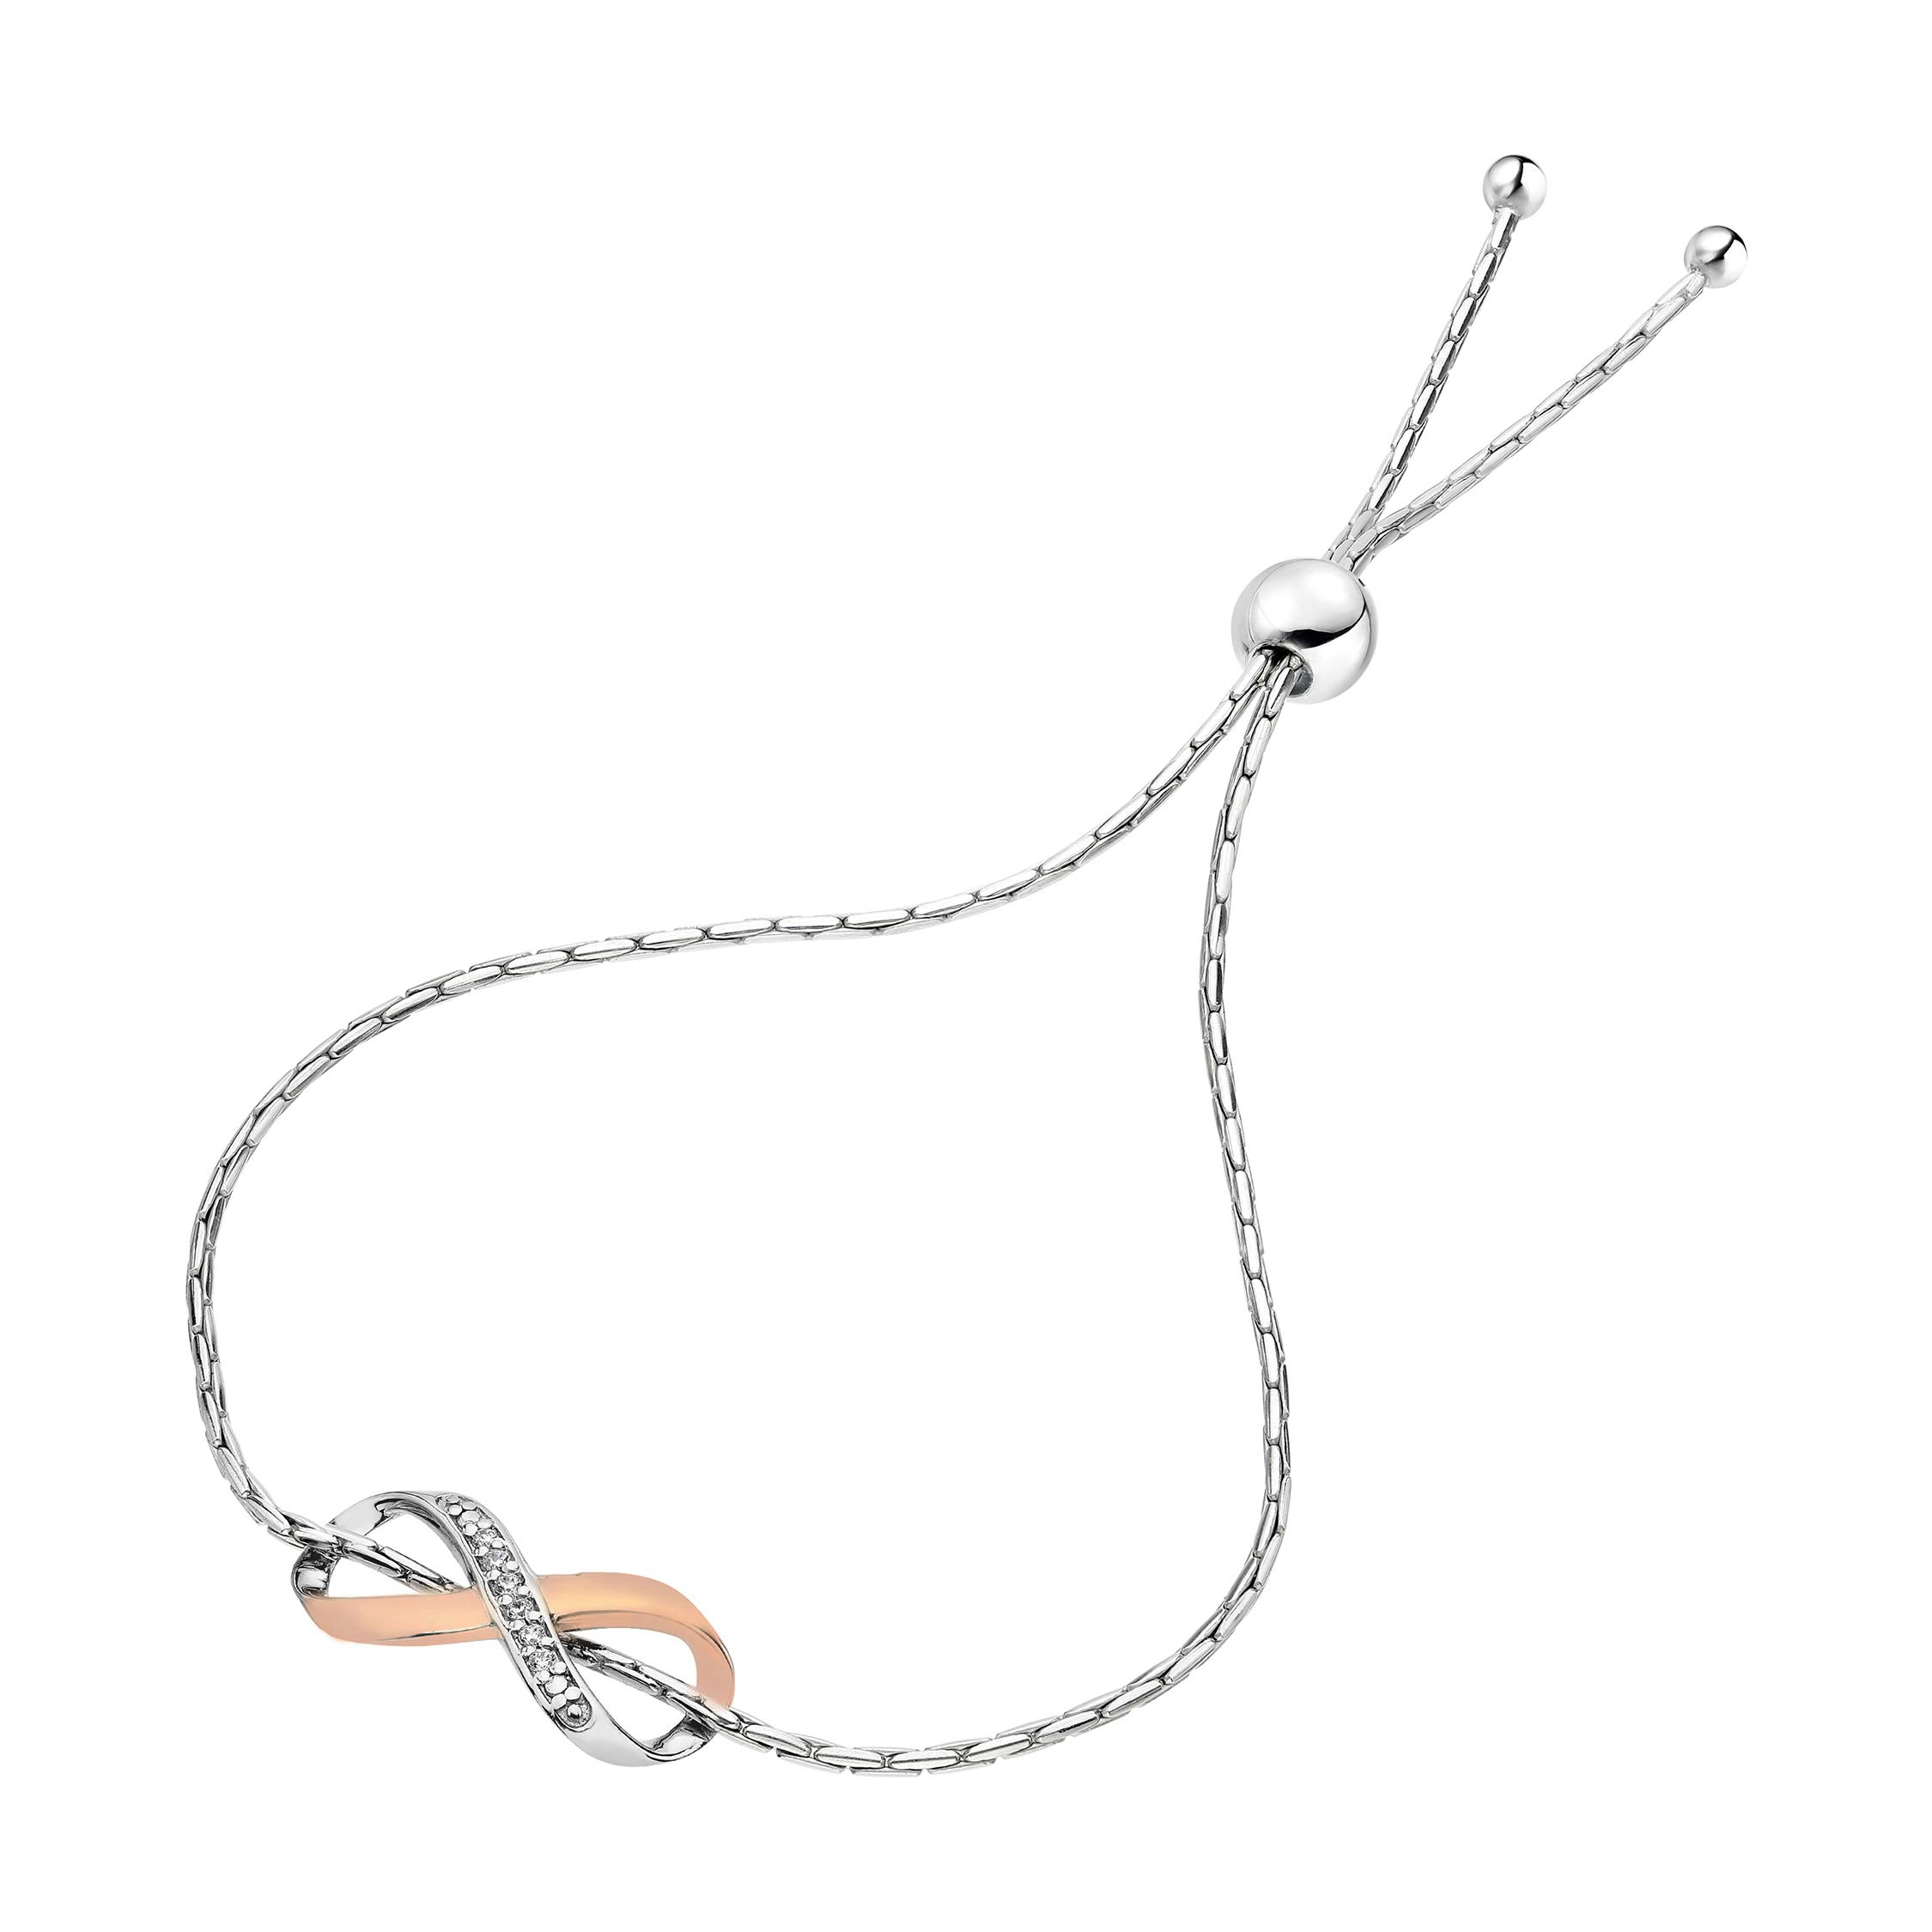 1/20 cttw Diamond Bolo Bracelet Rose Gold Plated Over .925 Sterling Silver Infinity - Pink